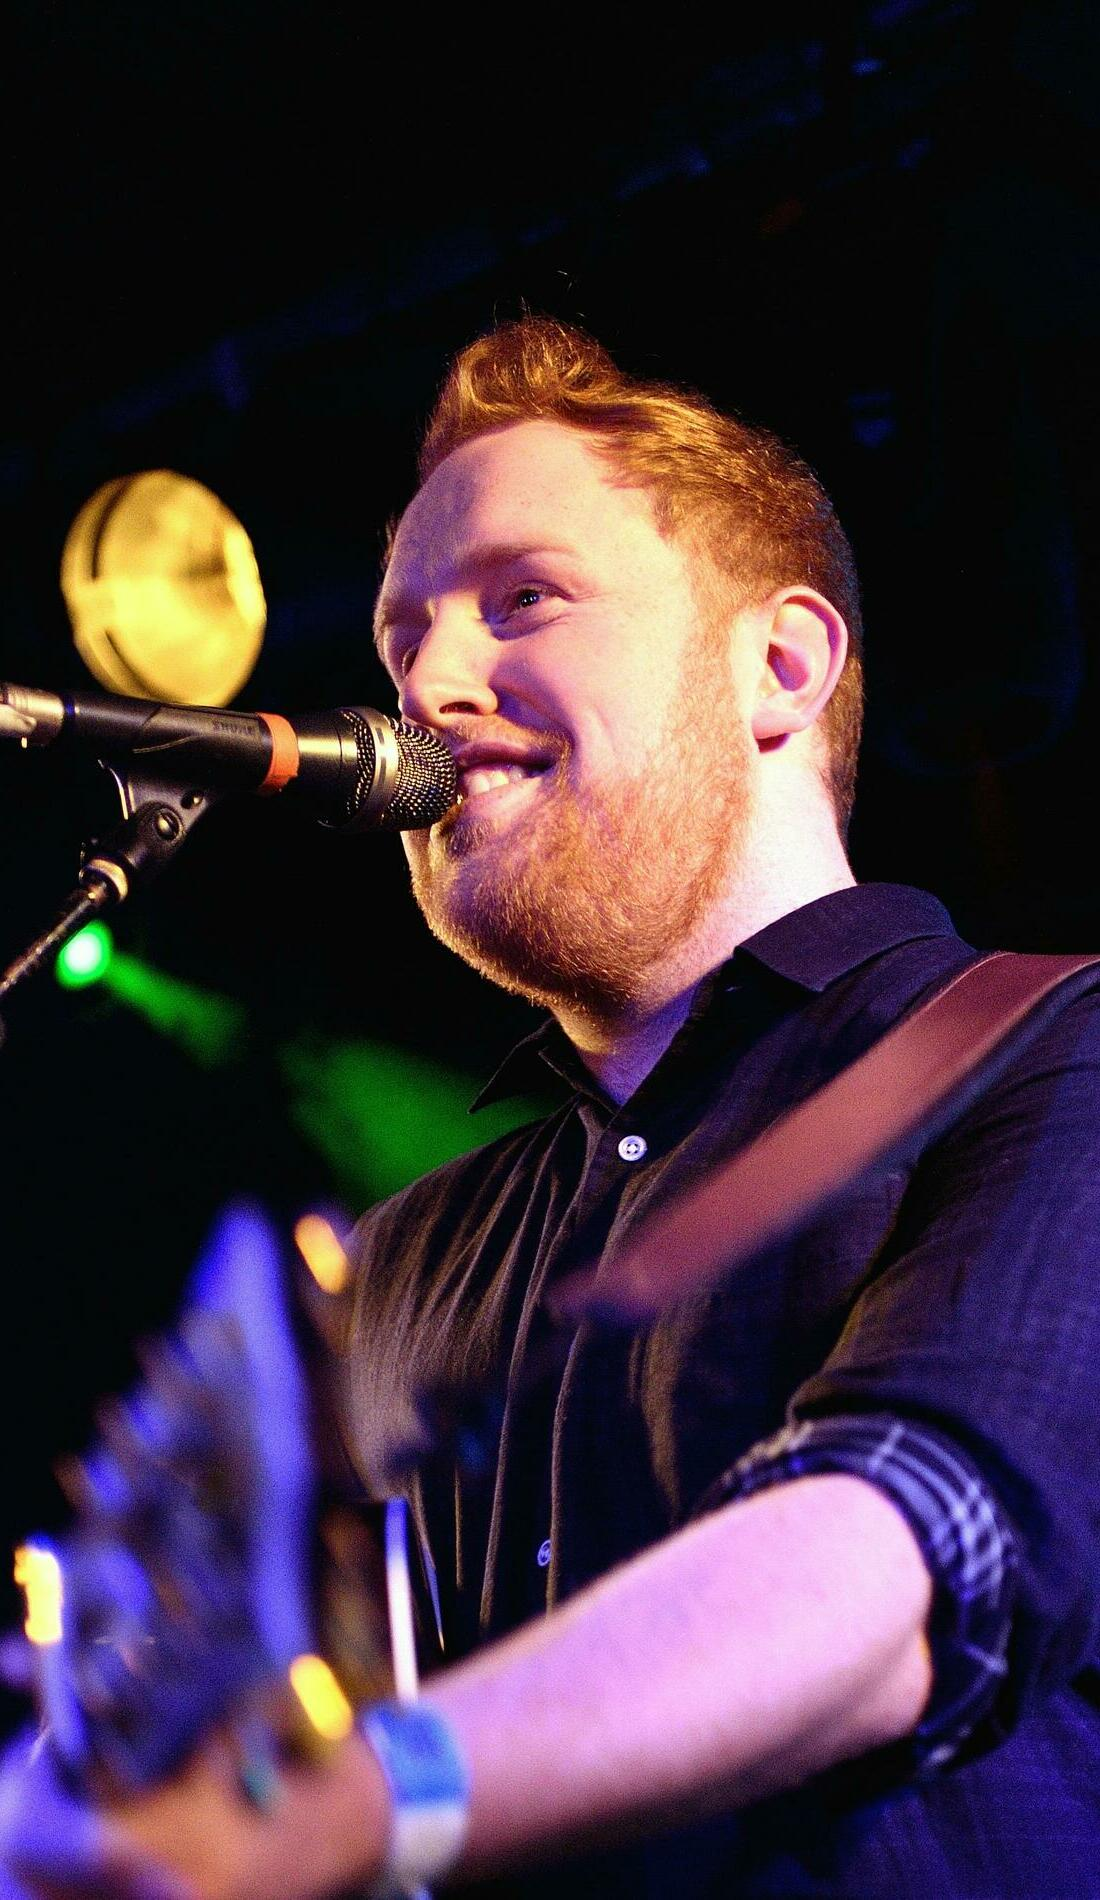 A Gavin James live event